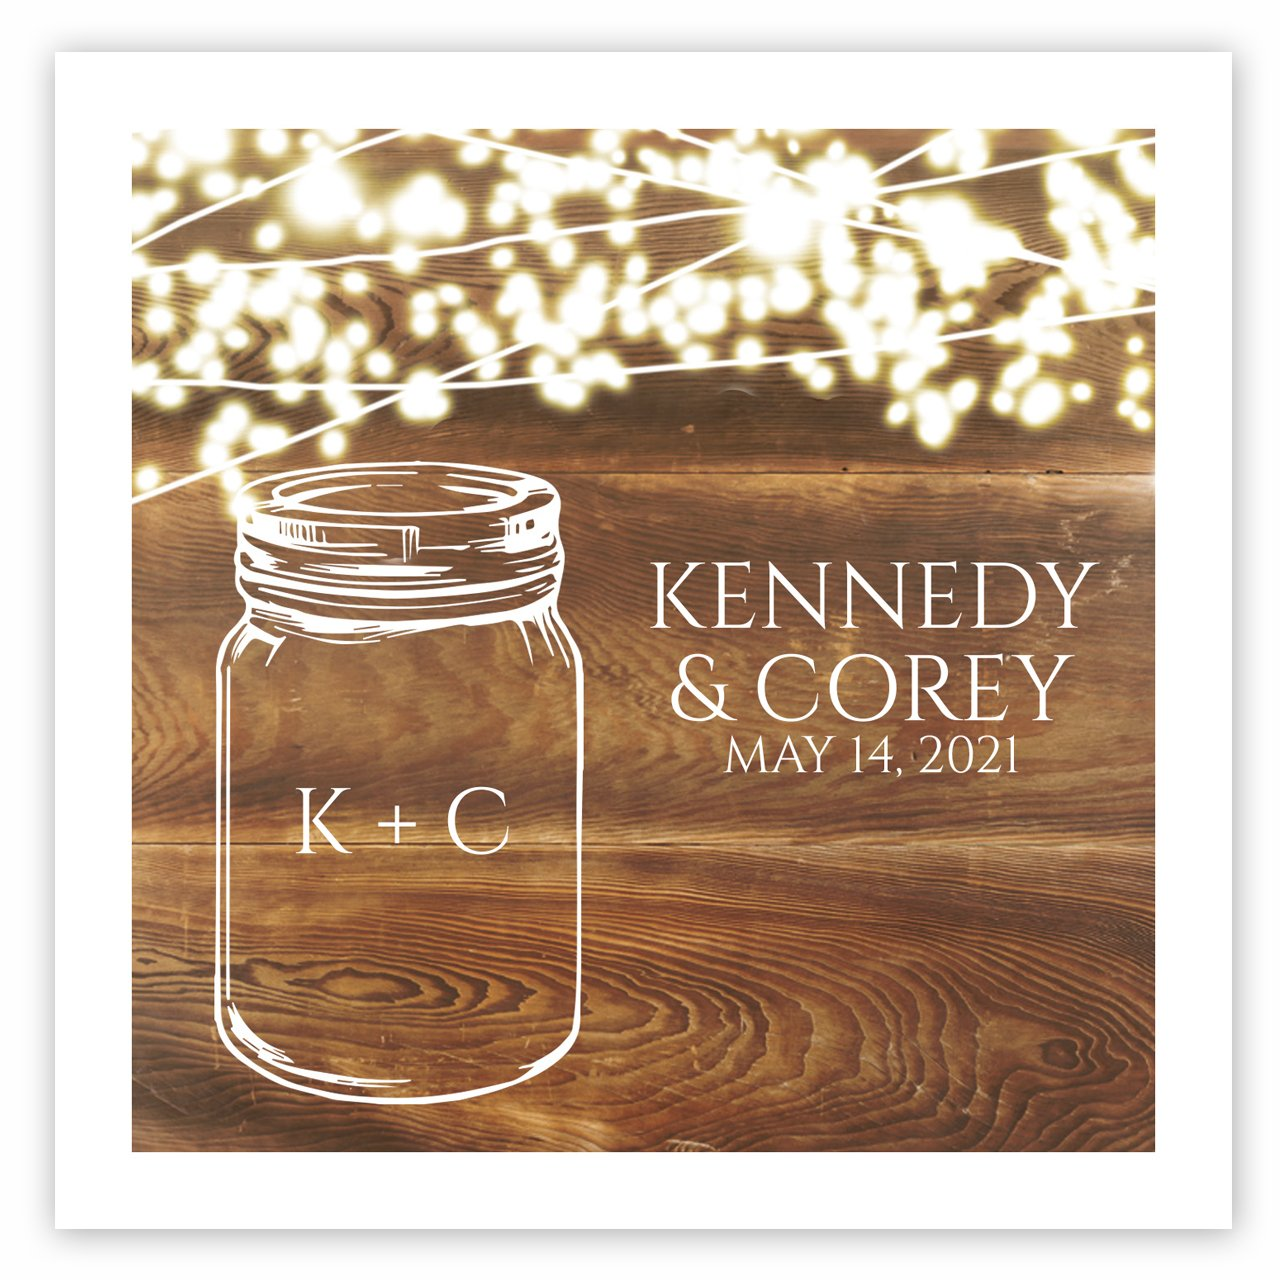 Country Sparkler Personalized Beverage Cocktail Napkins - 100 Paper Napkins by Canopy Street